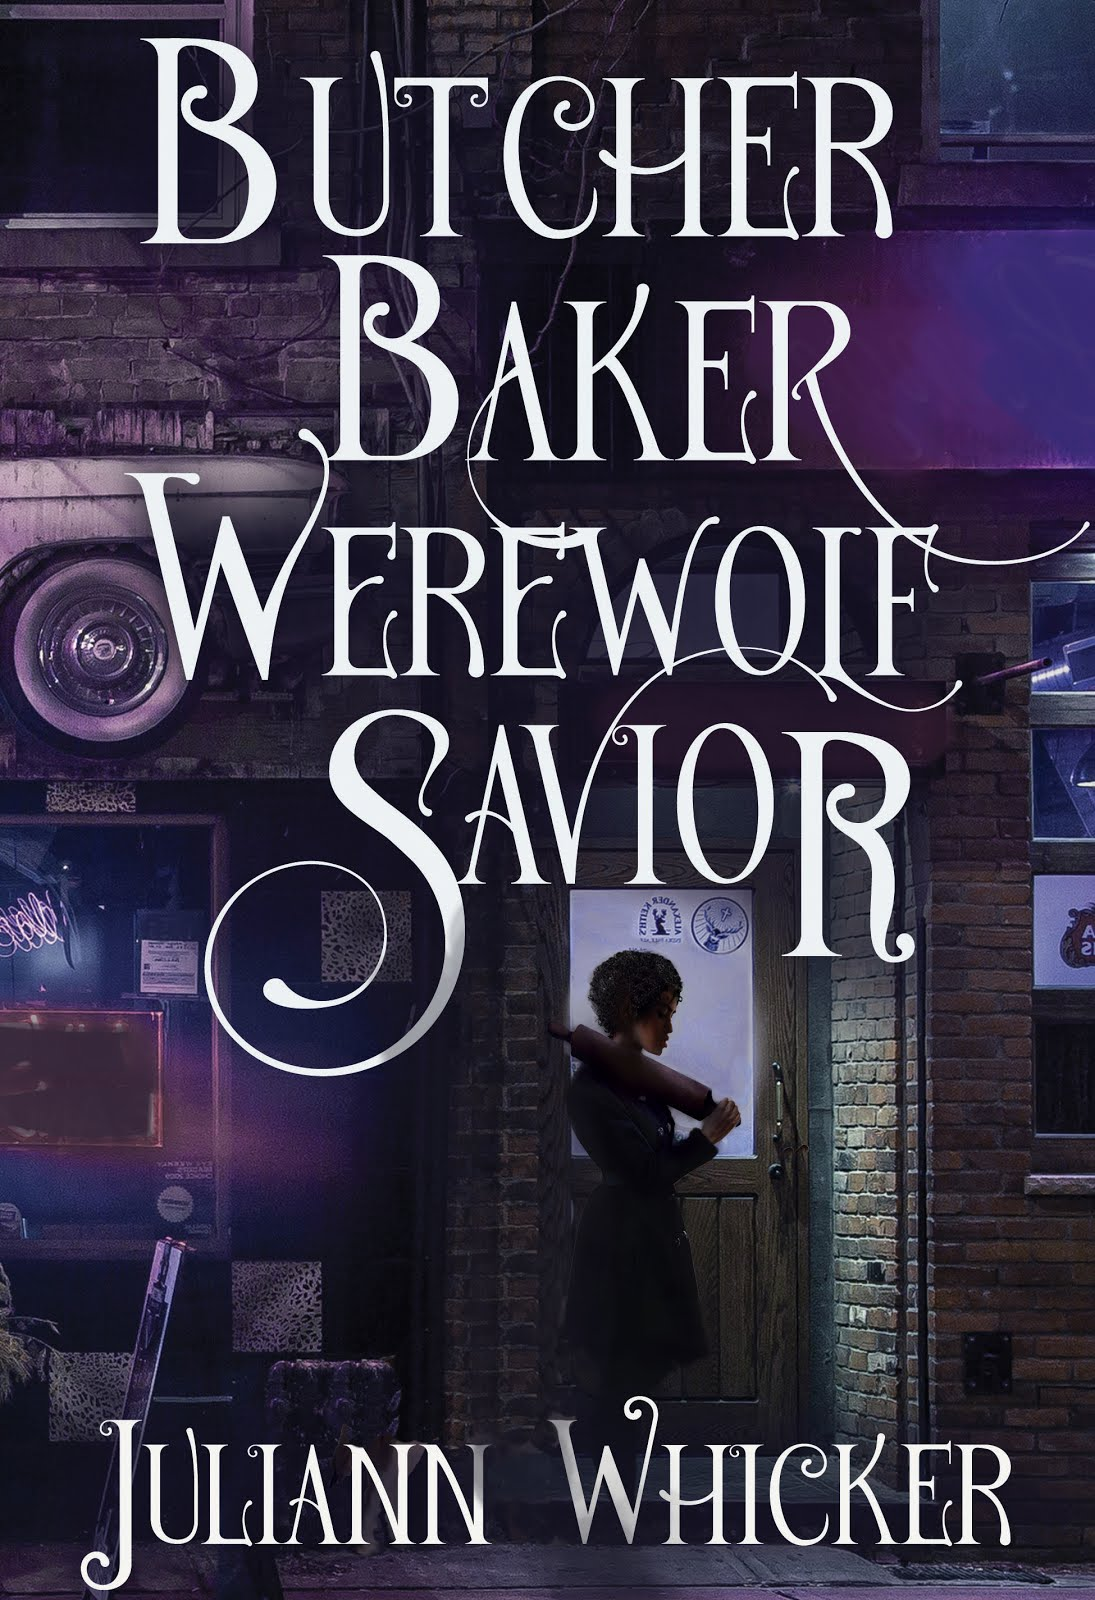 Butcher, Baker, Werewolf Savior